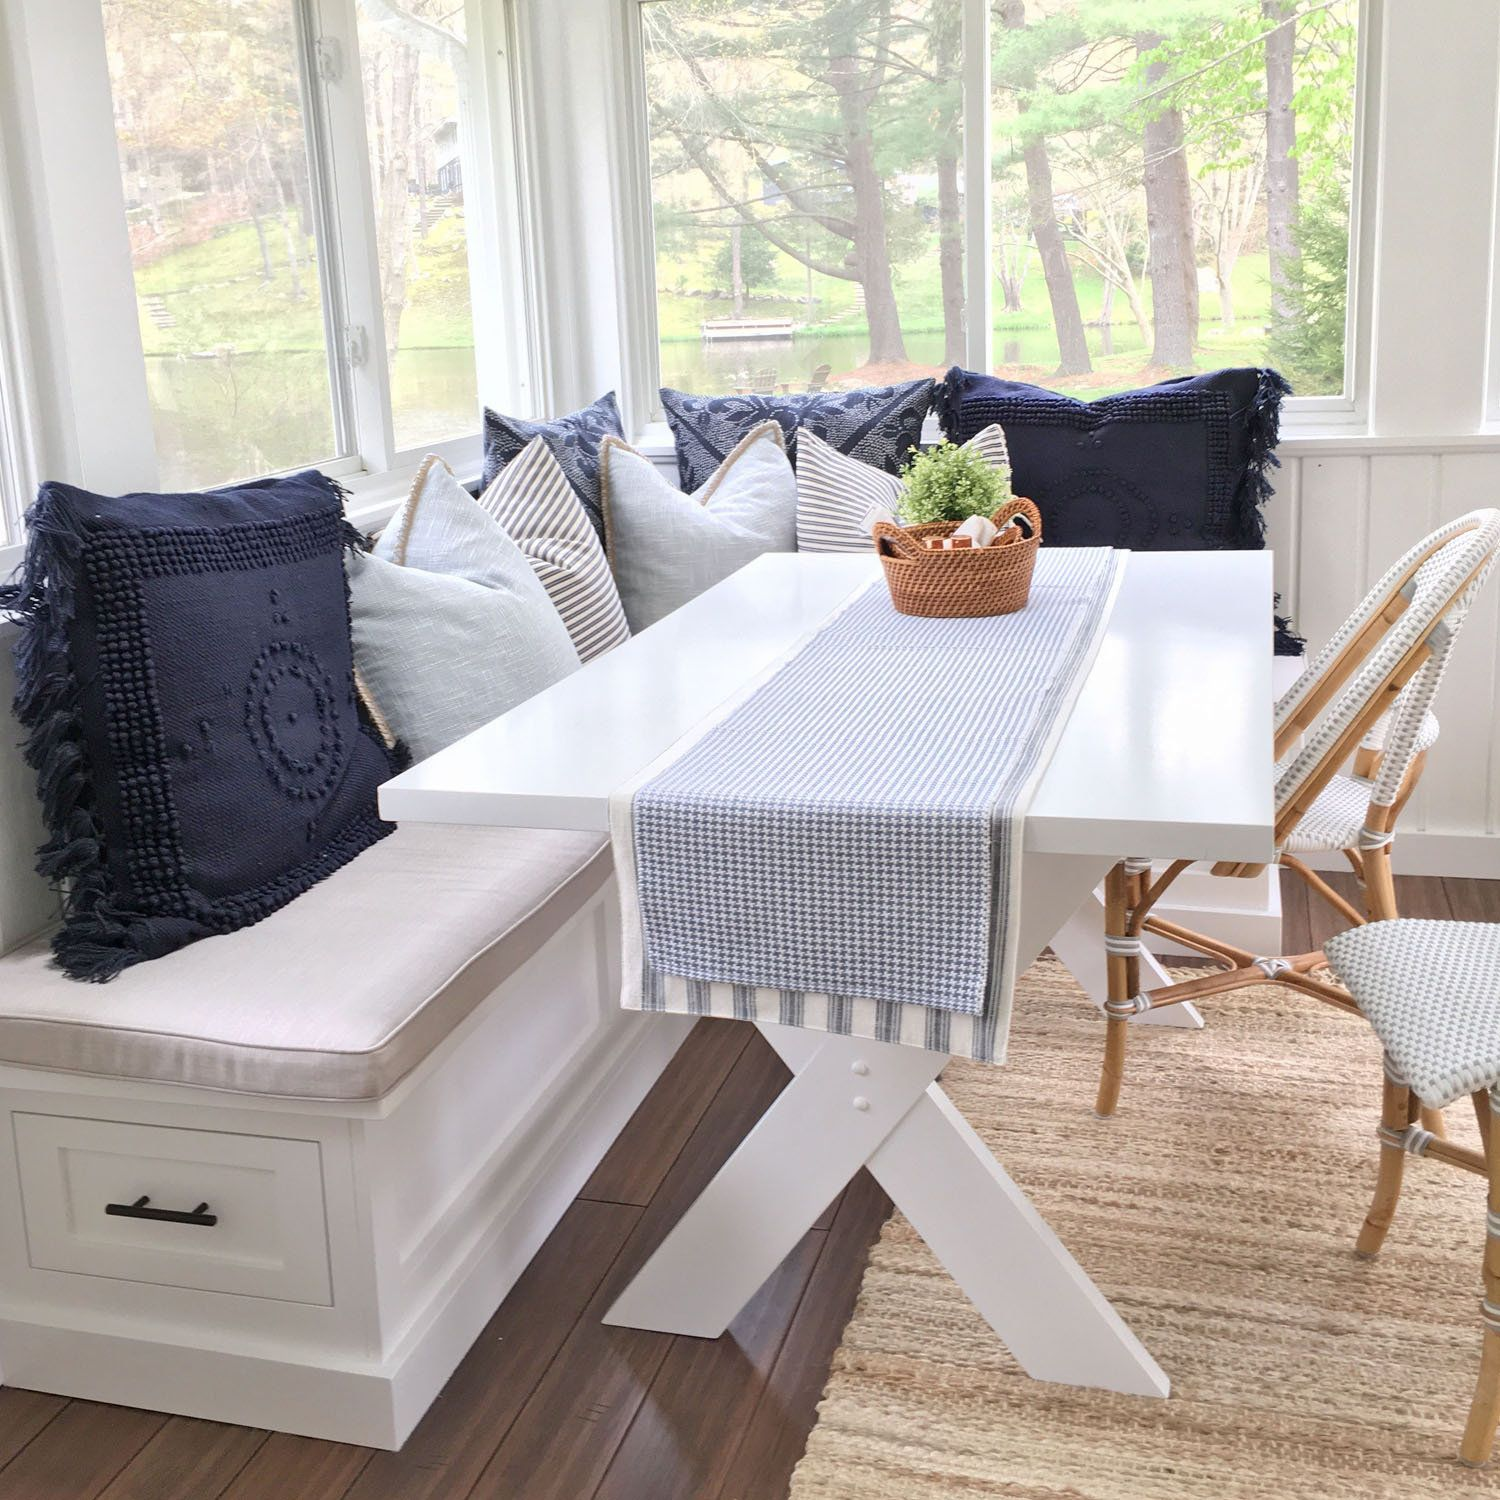 Sunbrella Custom Breakfast Nook Cushions Dining Table Window Seat Bench L Shaped Indoor Outdoor Fabric 5 Wide 4 Thick Breakfast Nook Cushions Dining Table In Kitchen Corner Dining Table